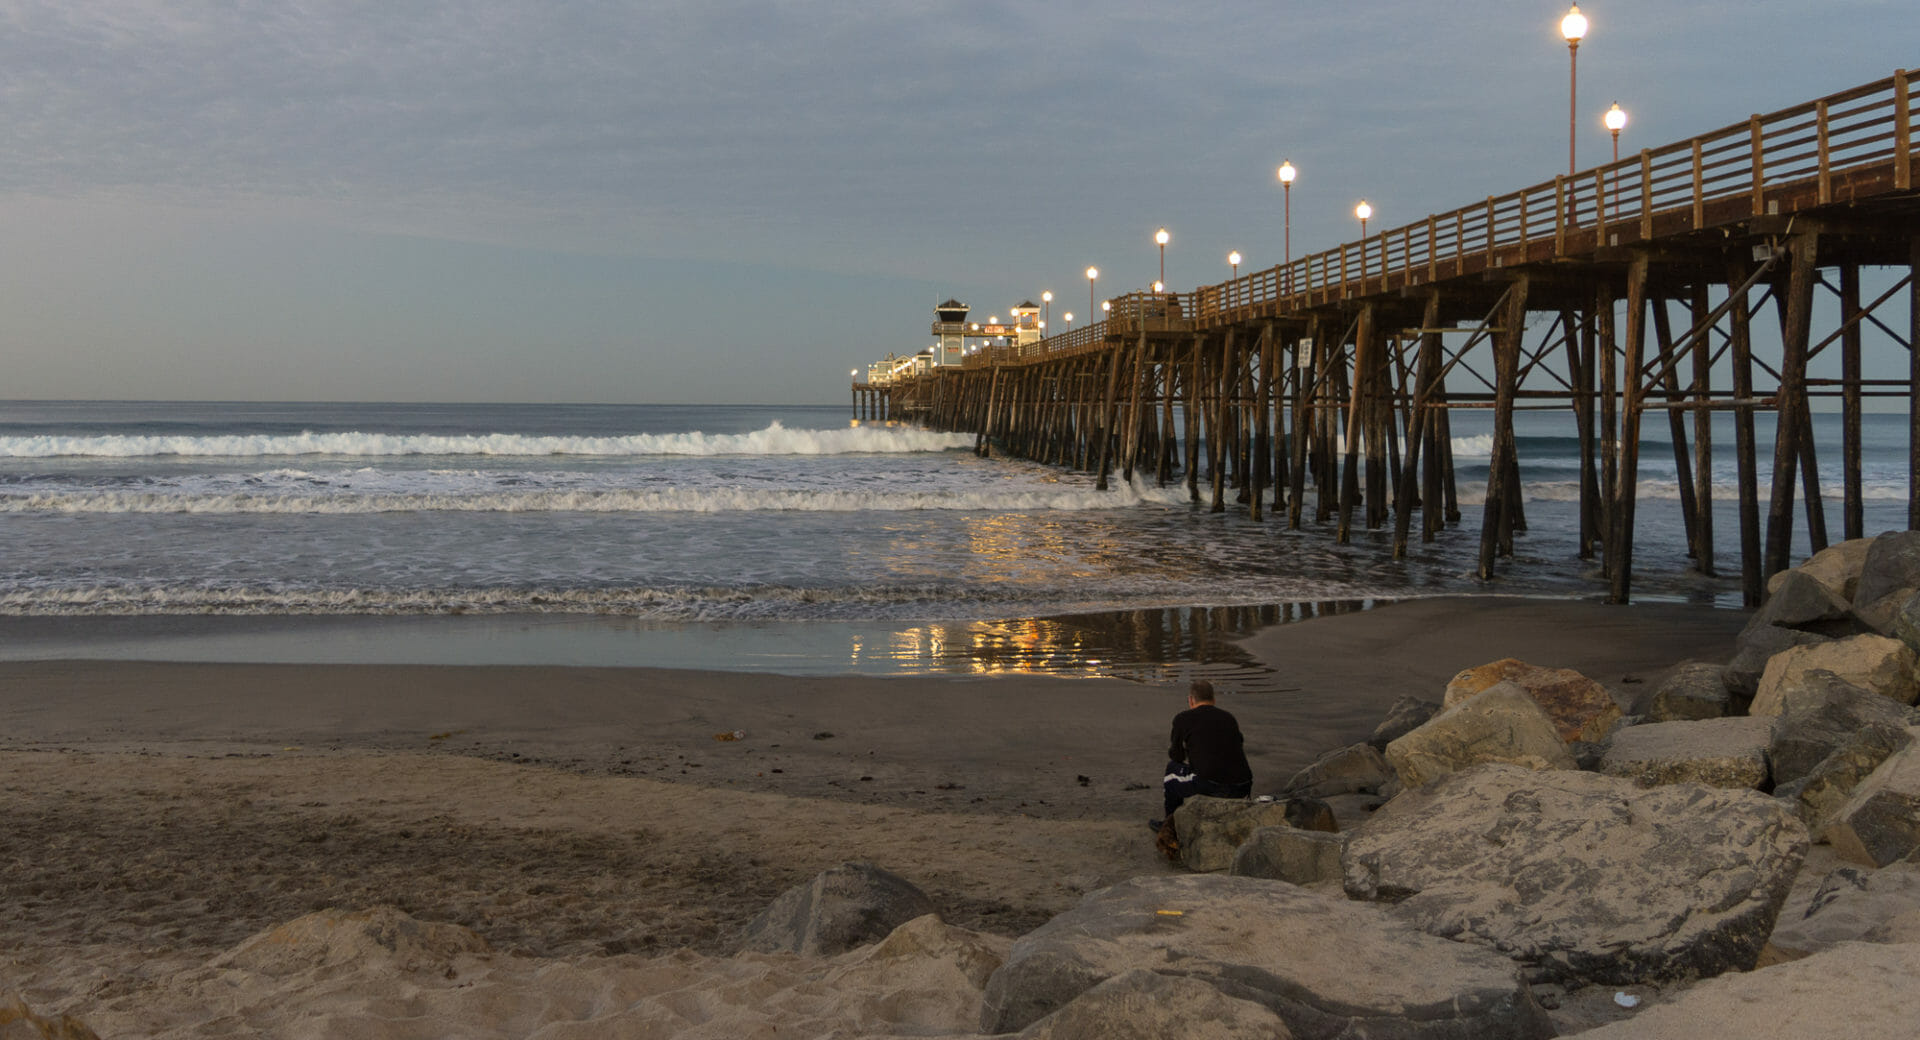 Morning at the Oceanside Pier